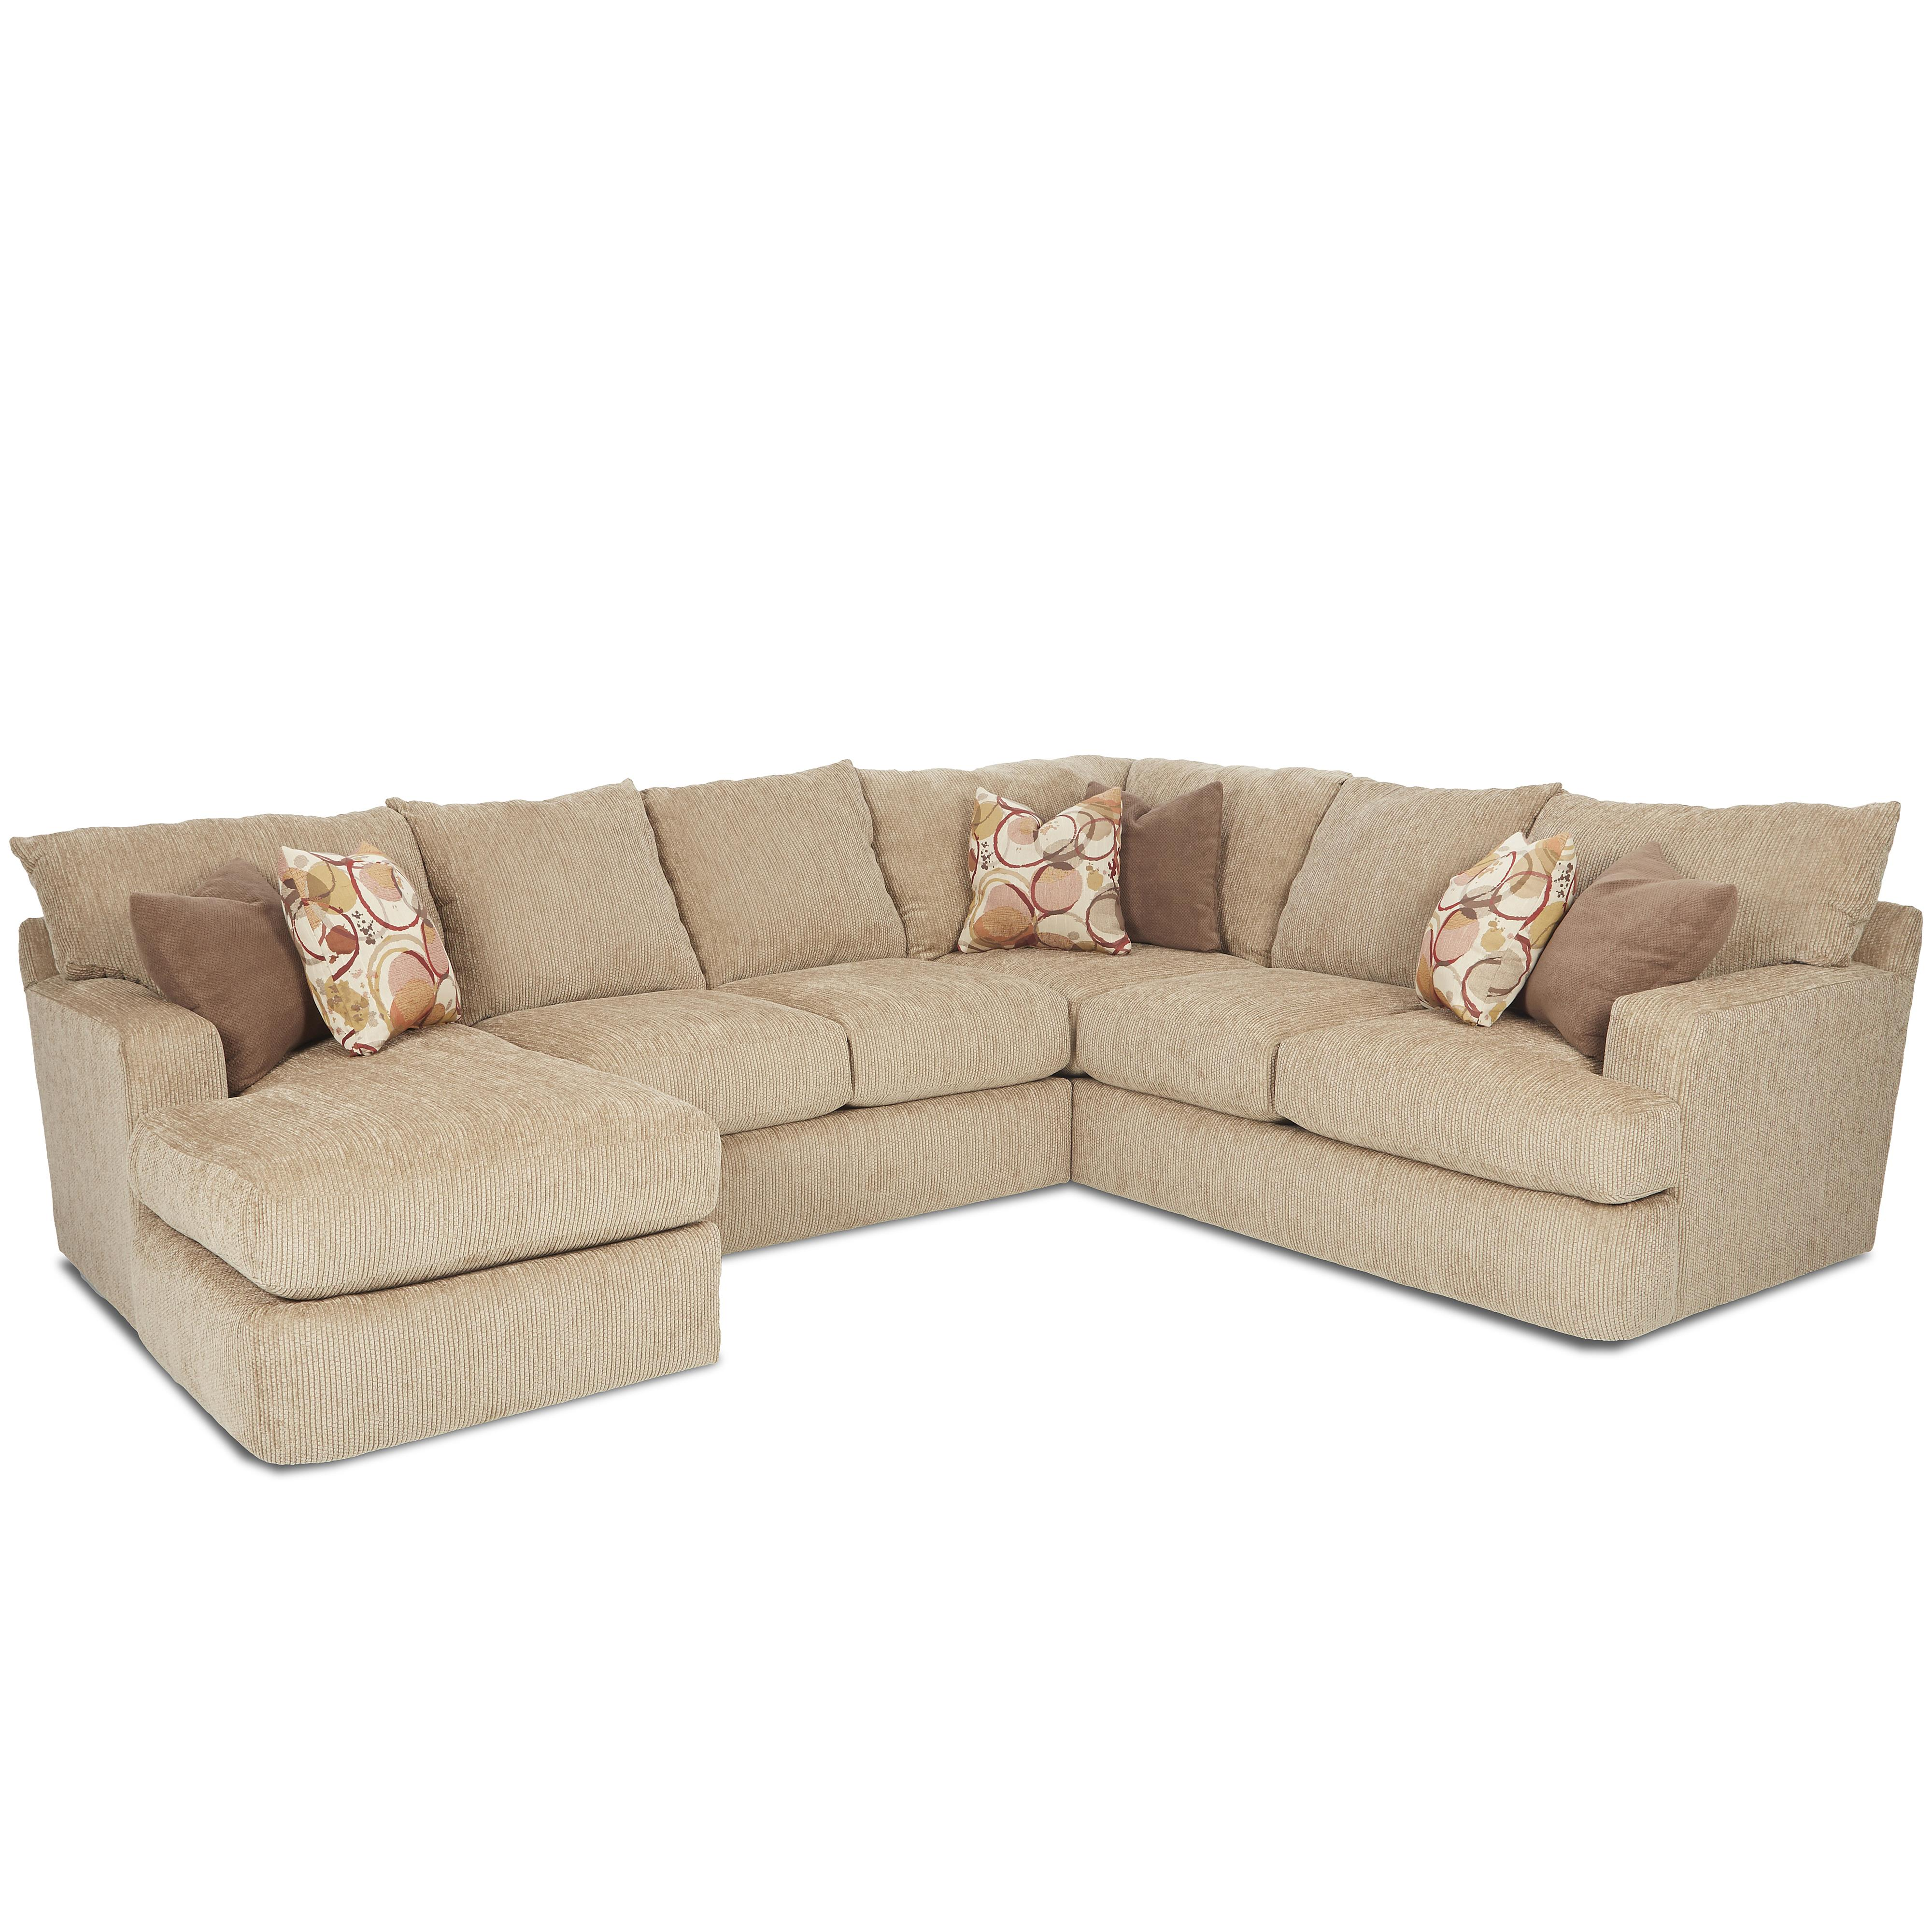 Oliver Sectional Sofa by Klaussner at Godby Home Furnishings